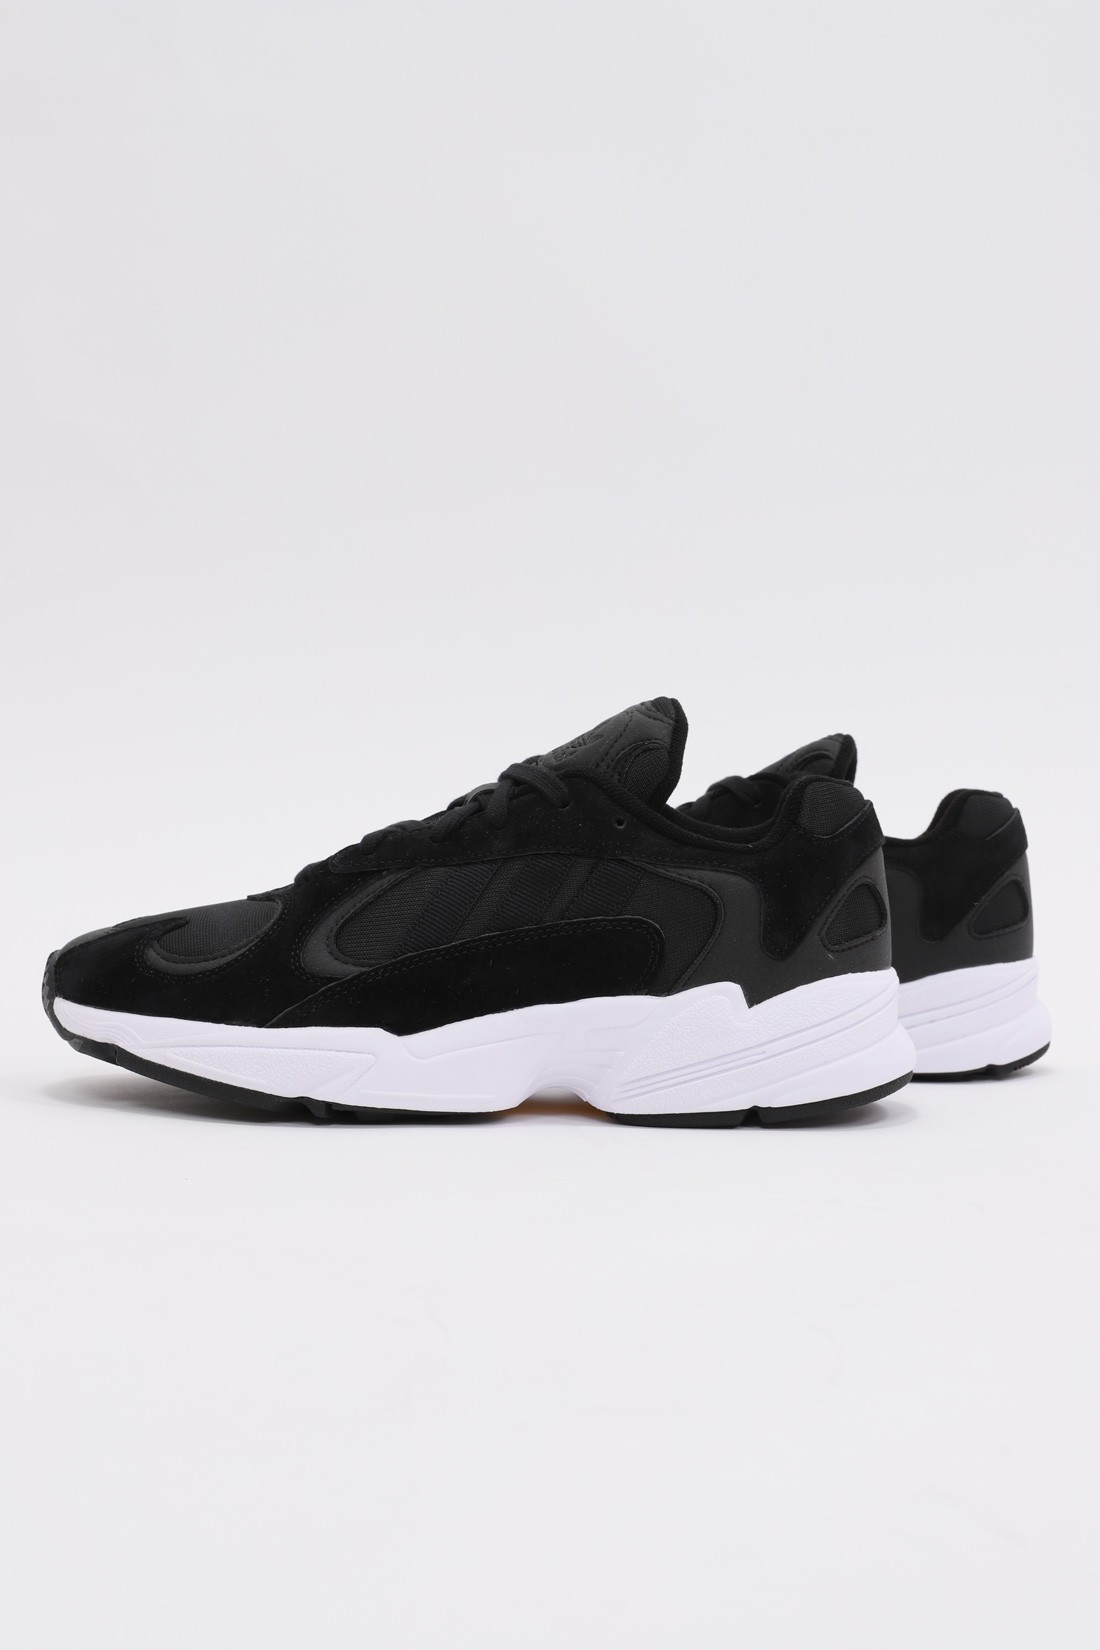 ADIDAS / Yung 1 cg7121 Core black